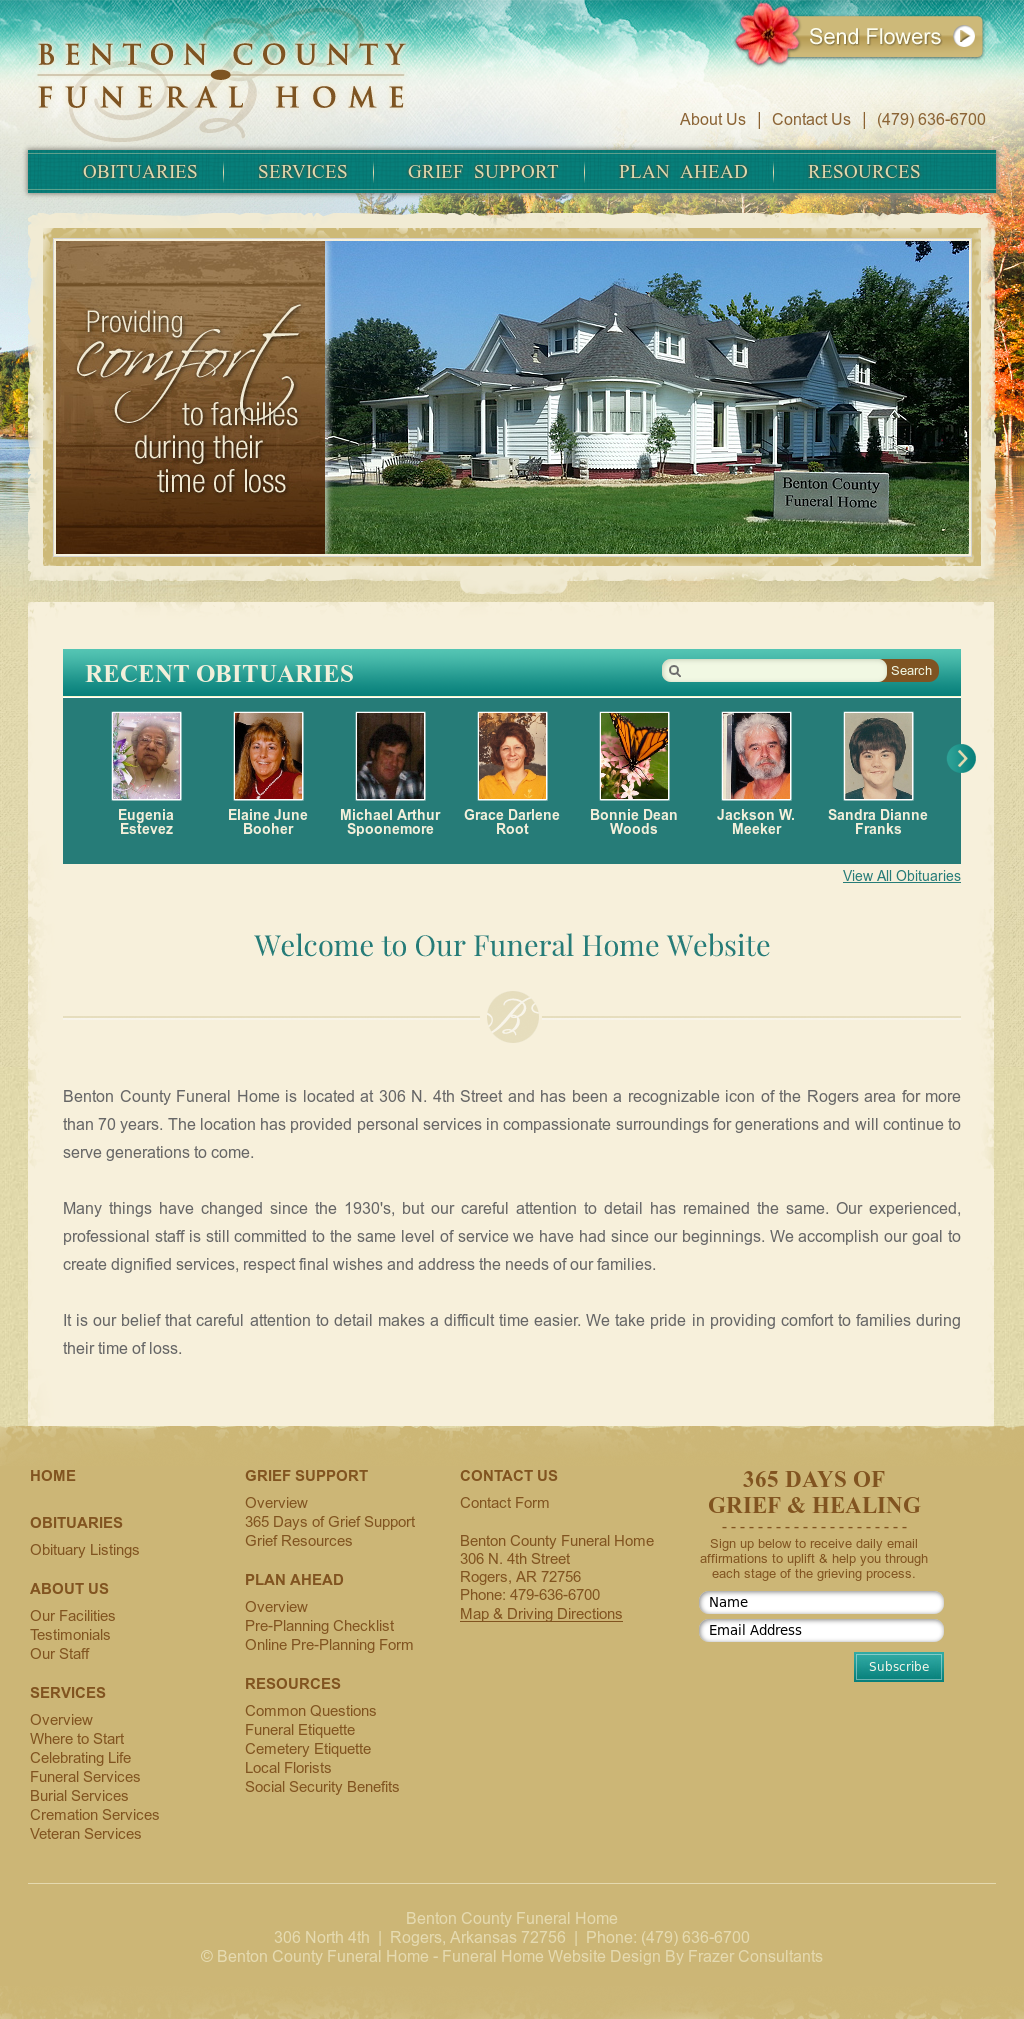 Benton County Funeral Home Competitors, Revenue and Employees ...